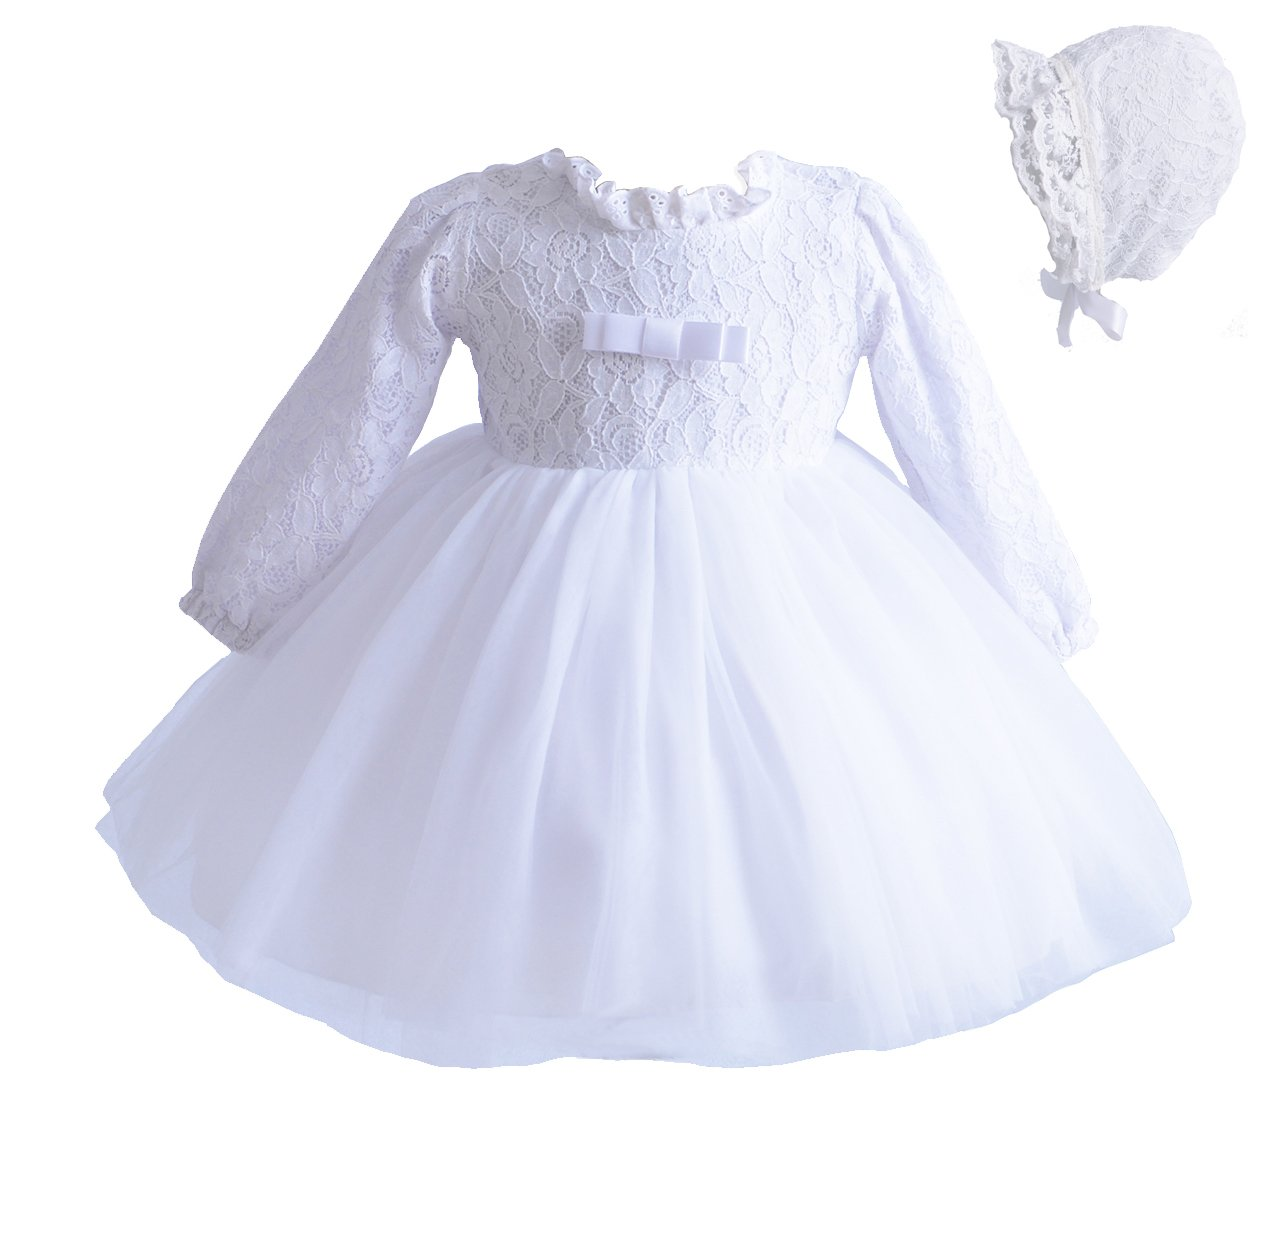 Cinda Long Sleeve Lace Christening Party Dress and Bonnet GZ212